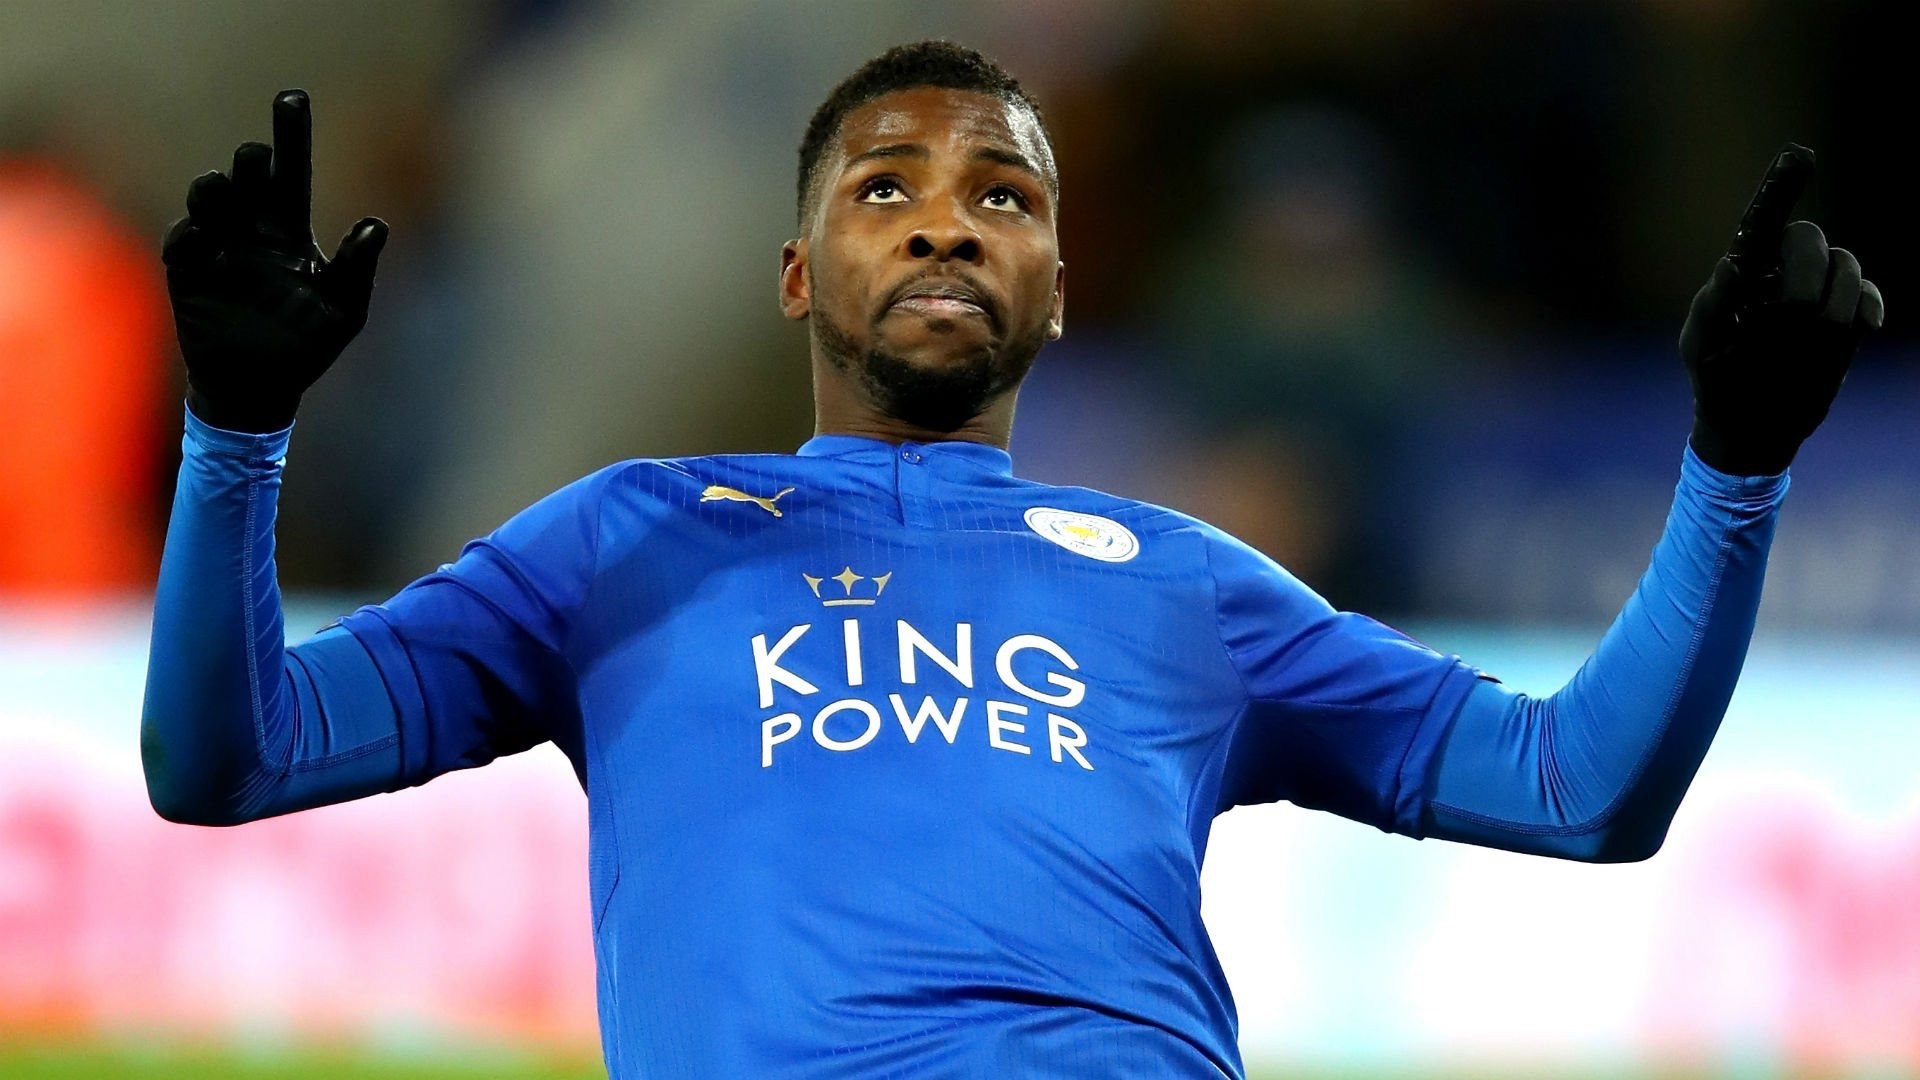 FA Cup: Leicester City boss Puel Lauds Iheanacho effort in Fleetwood Town win